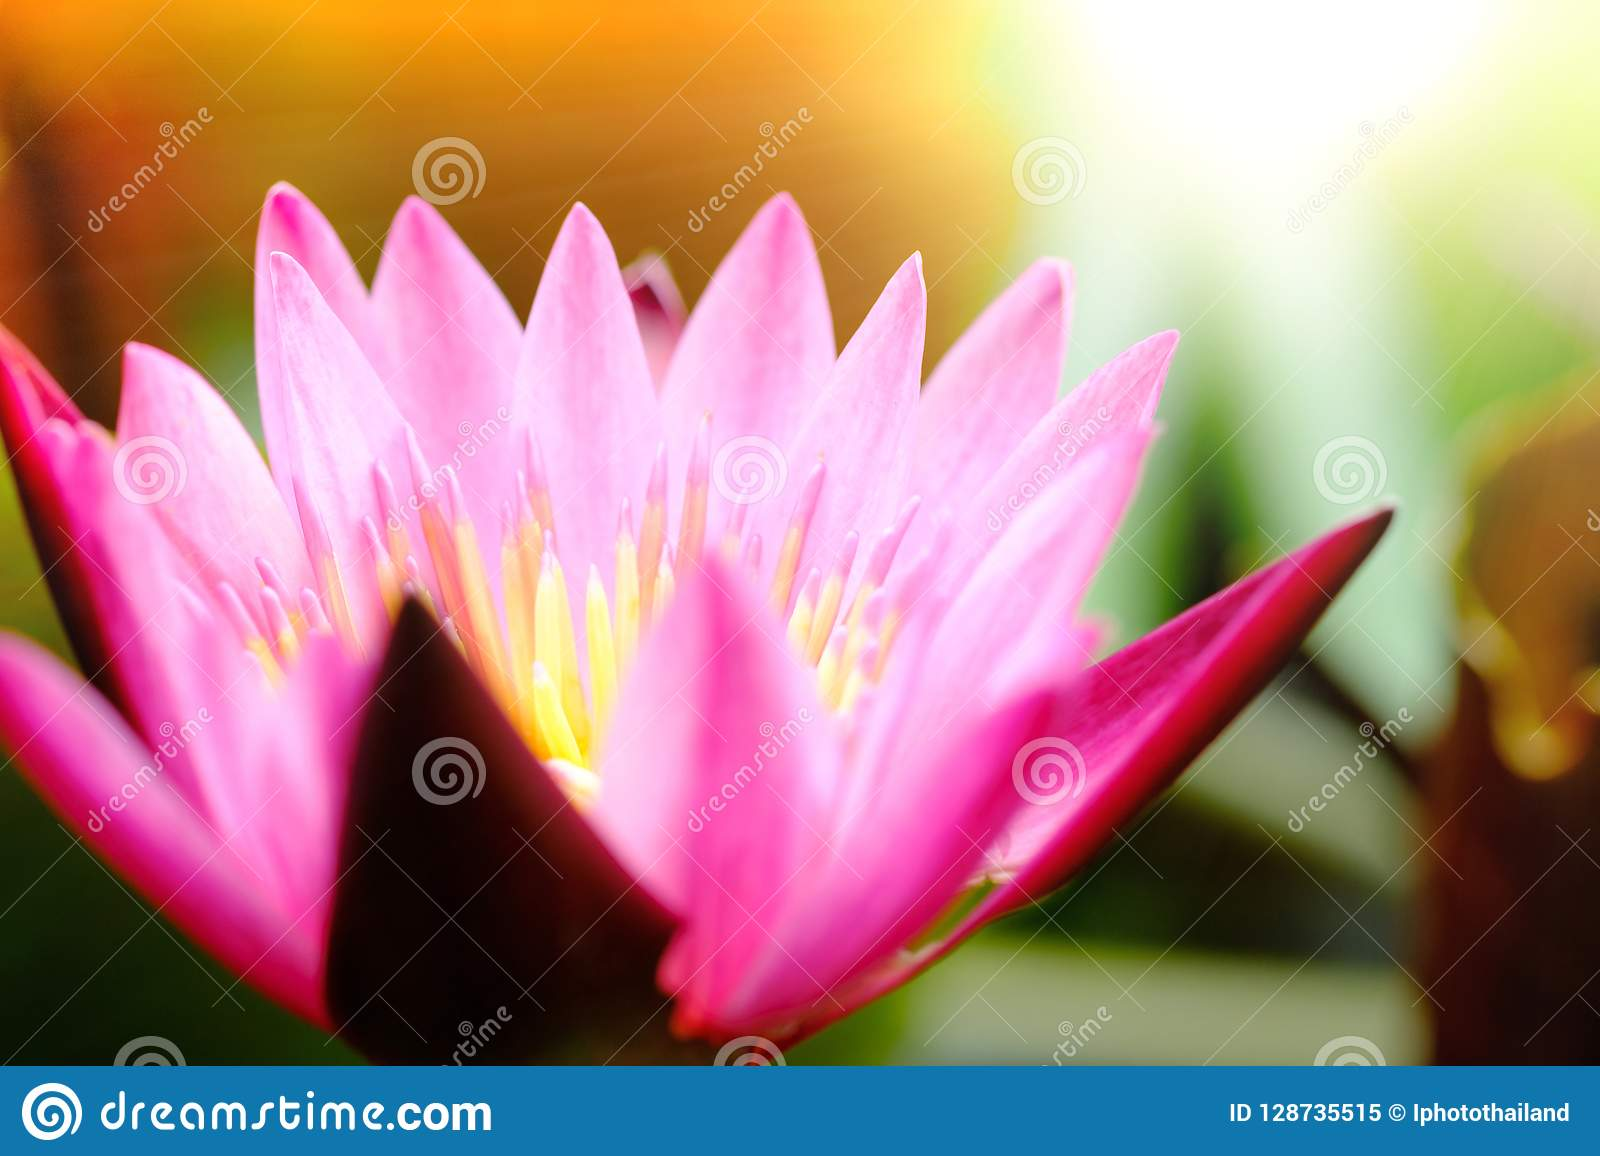 Selective Focus On Blooming Pink Lotus Flower Natural Background